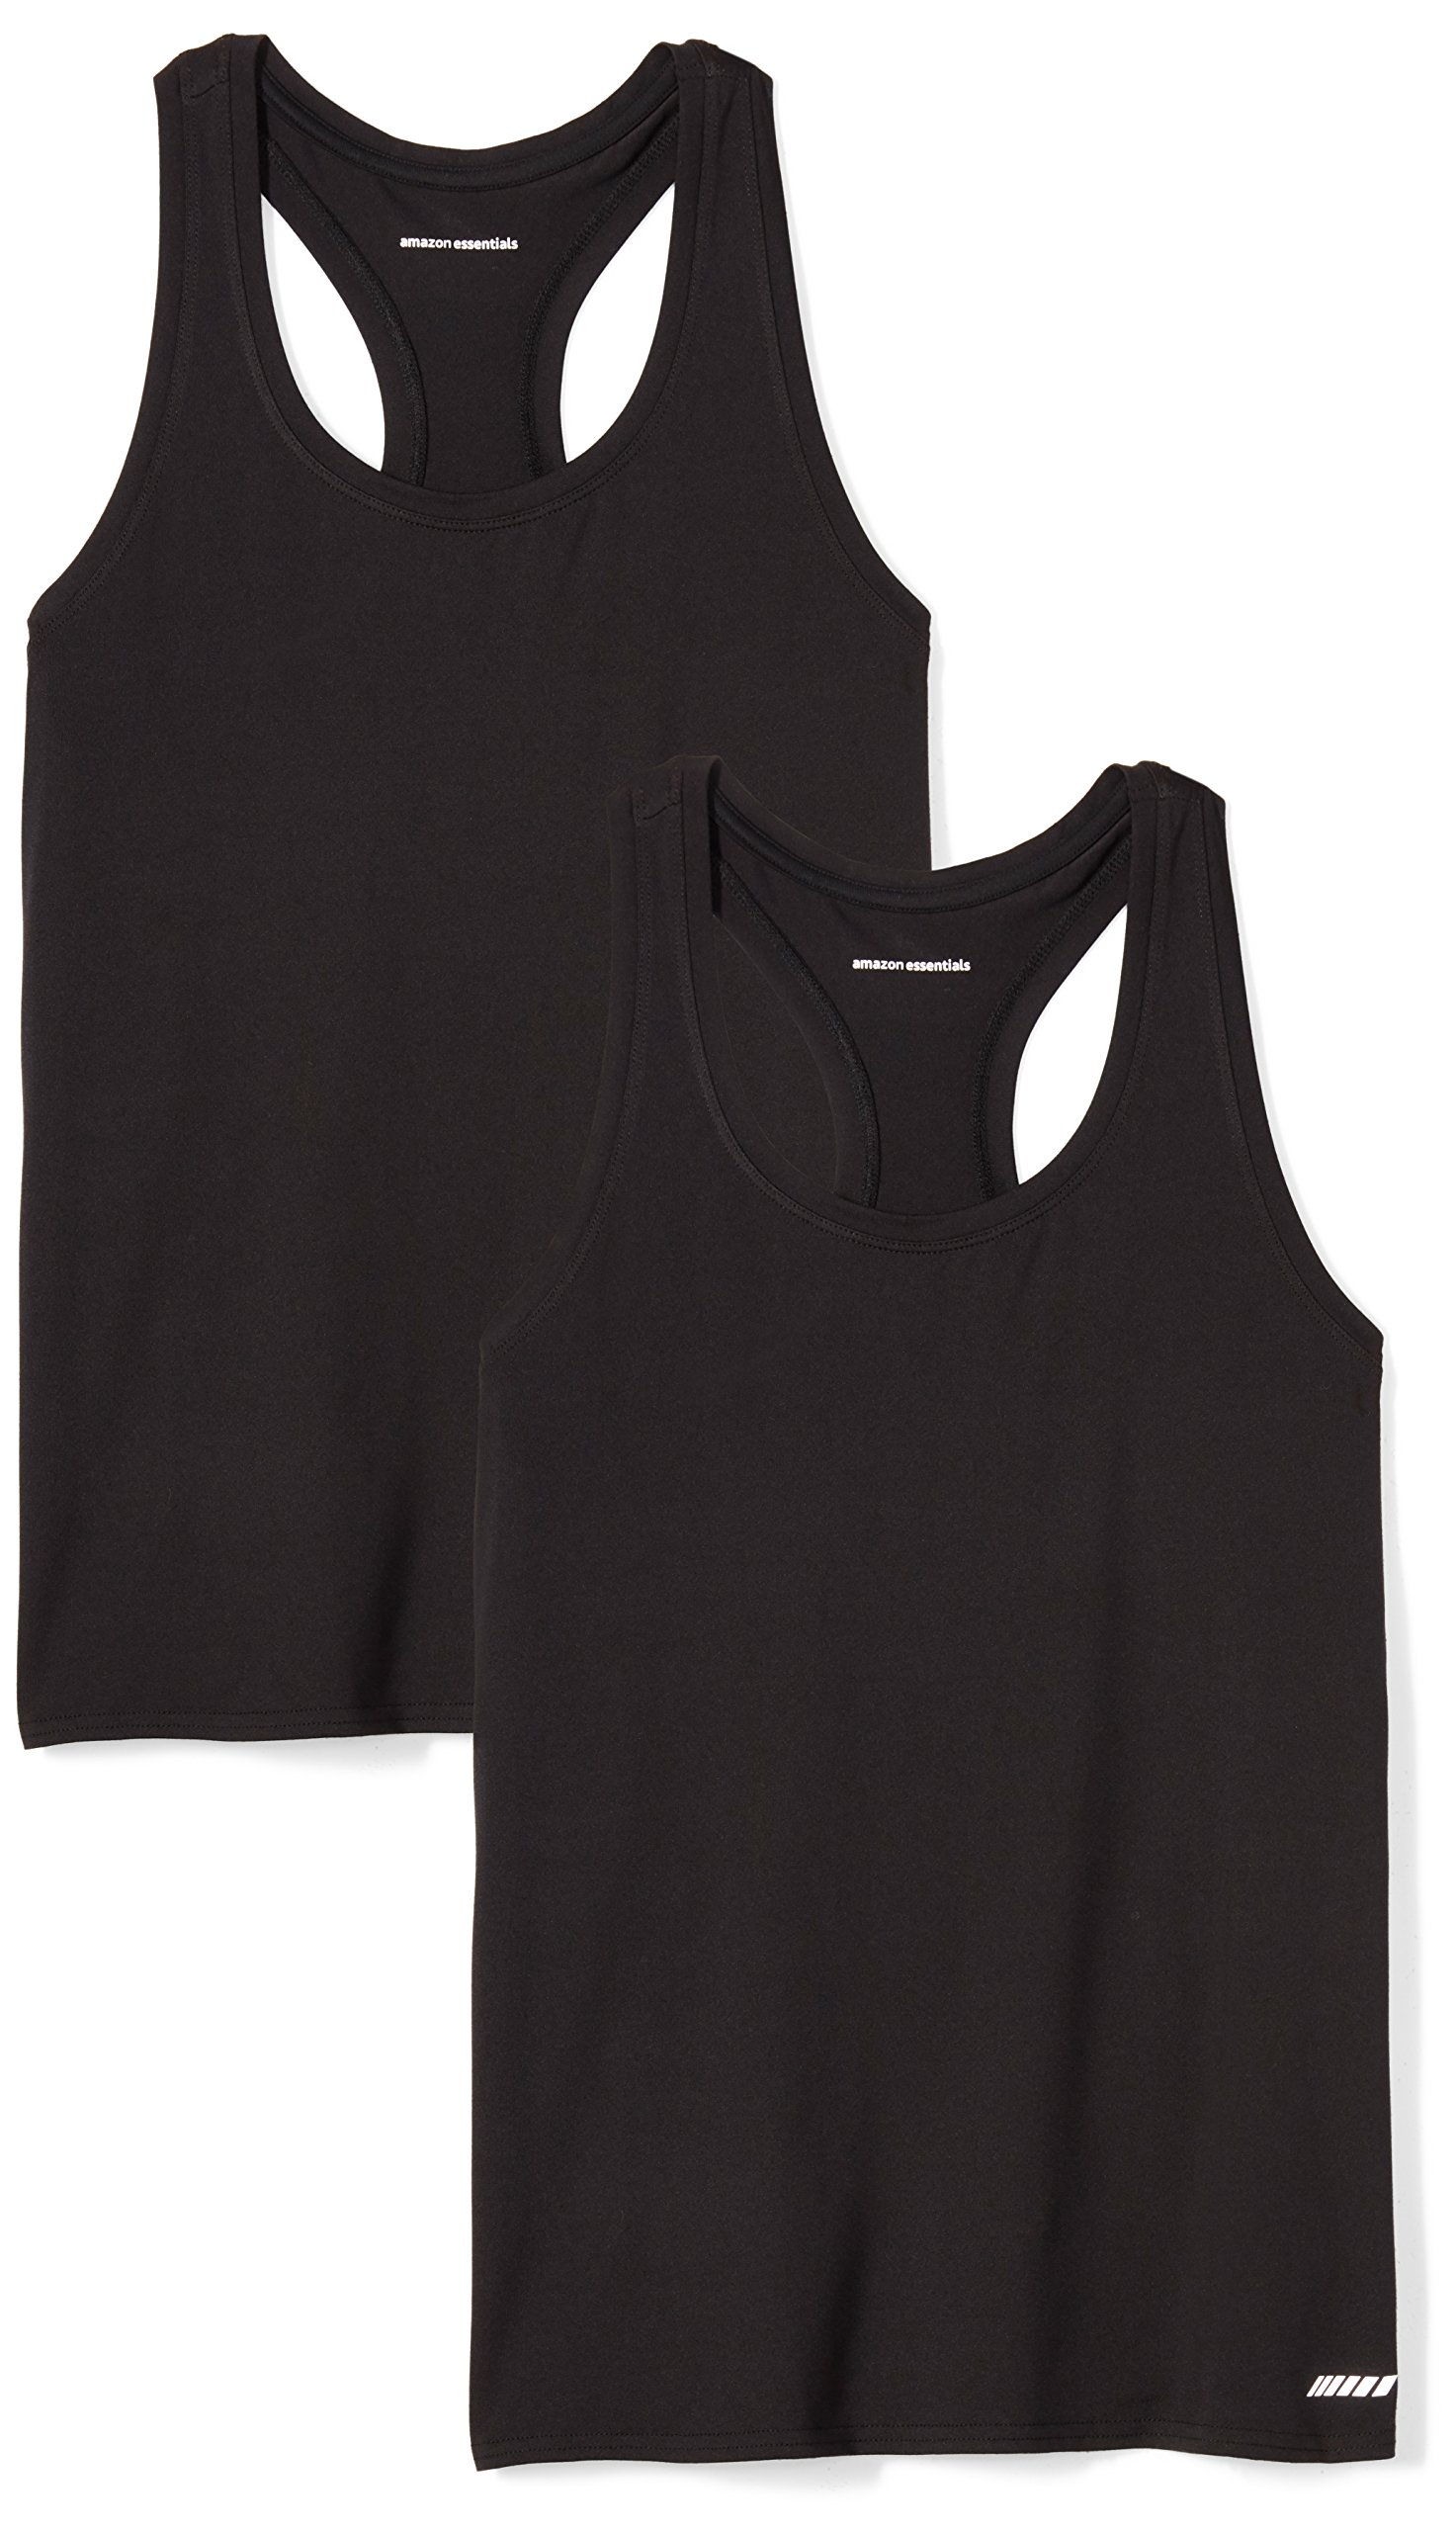 Amazon Essentials Women's Standard 2-Pack Tech Stretch Racerback Tank Top, Black/Black, Medium